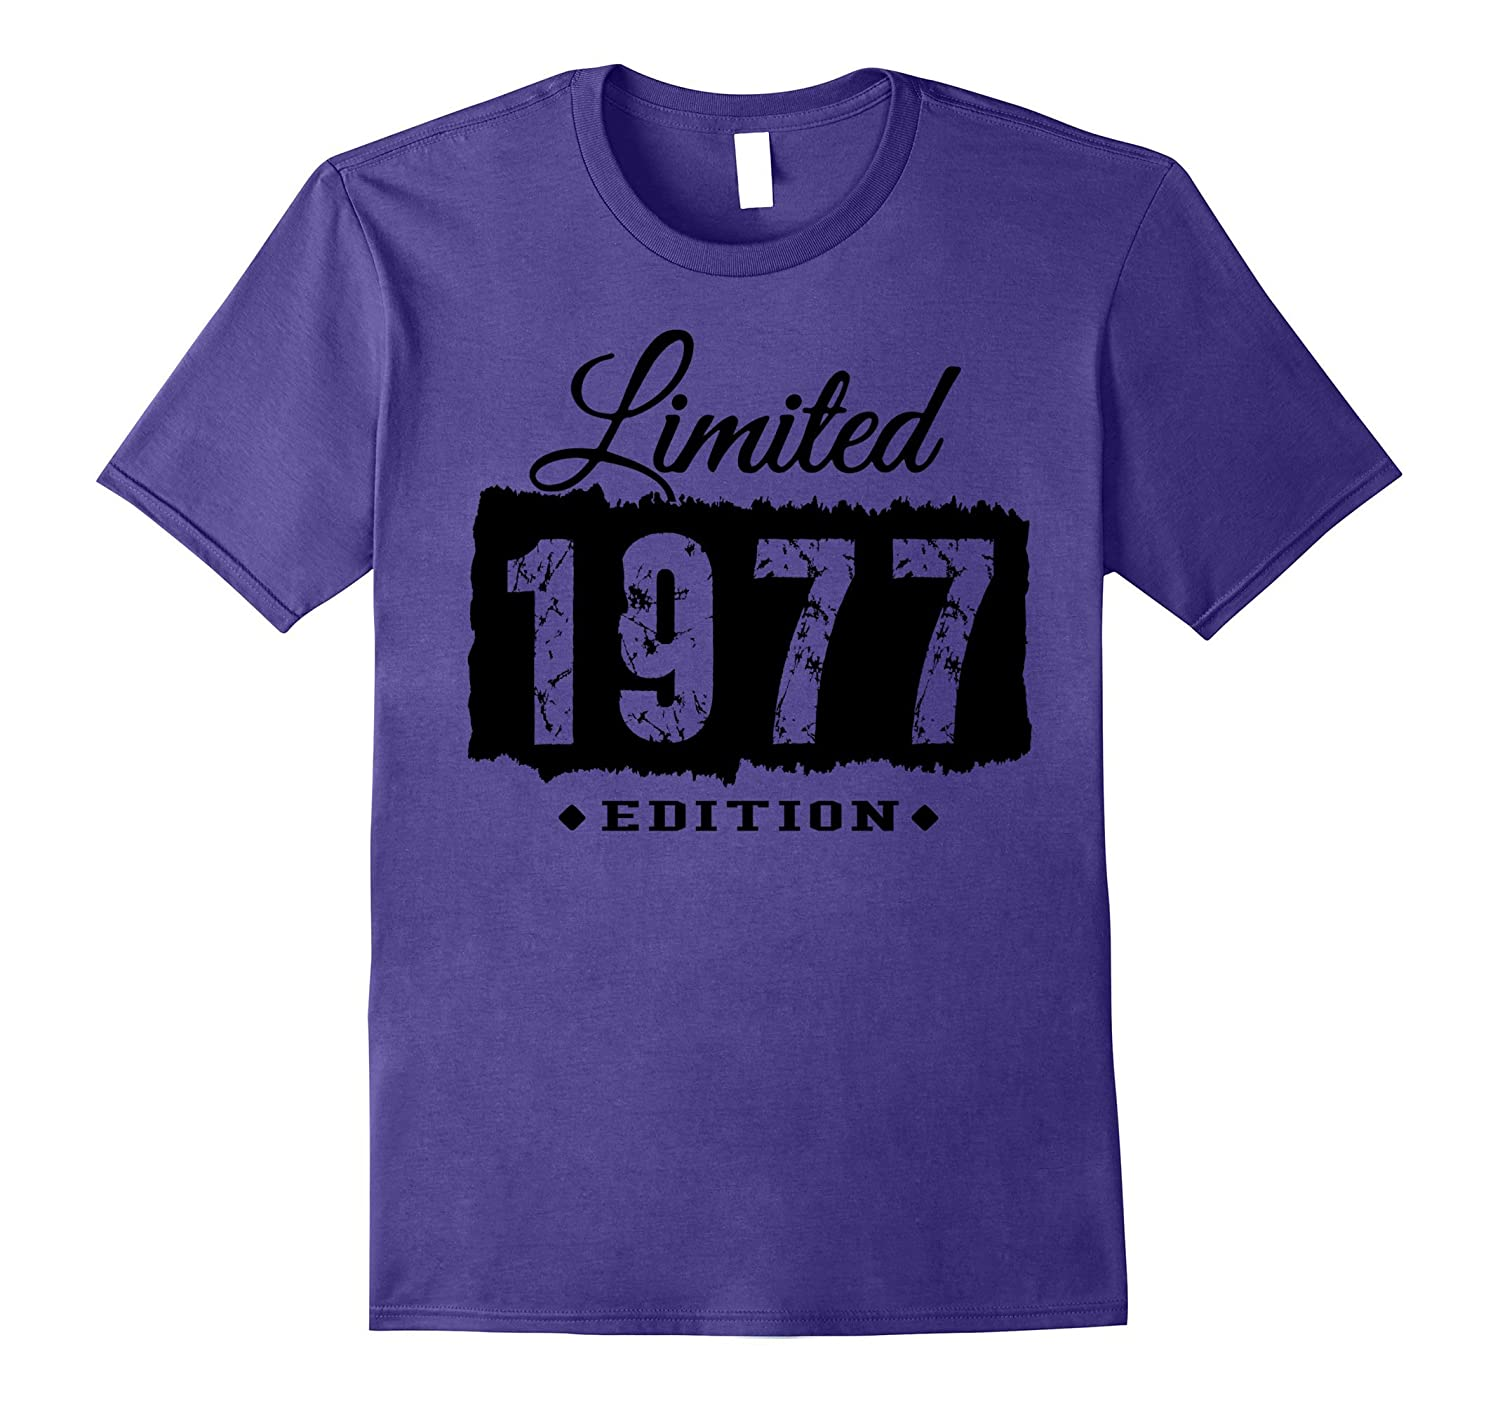 1977 Limited Edition 40th Birthday 40 Years Old Shirt-Vaci